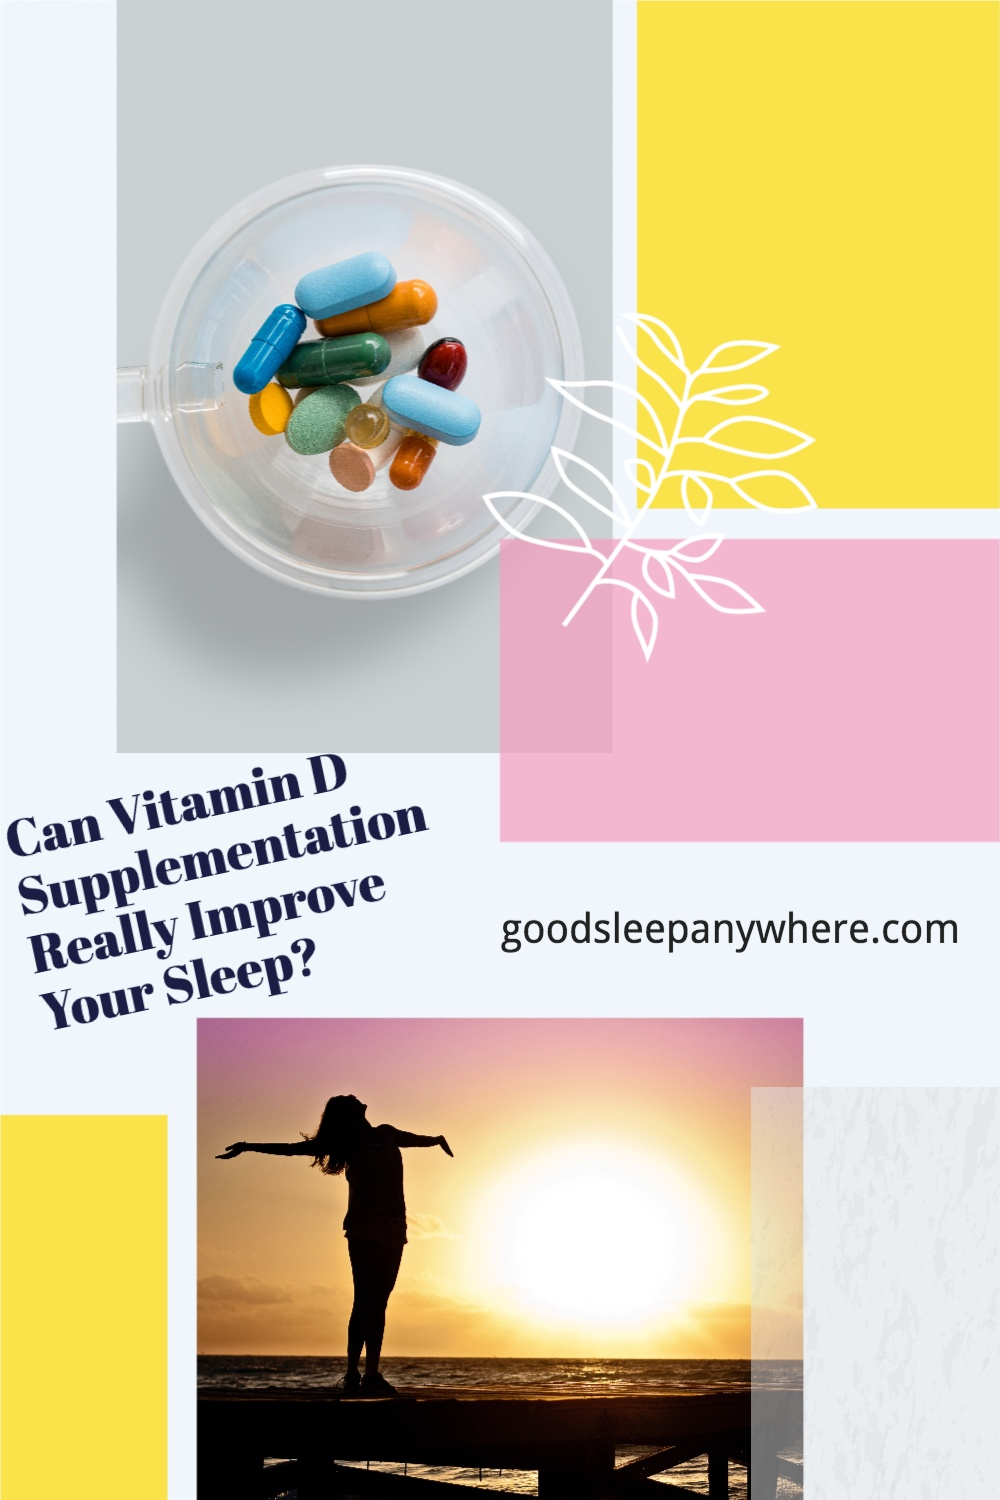 Can Vitamin D Supplementation Really Improve Your Sleep?